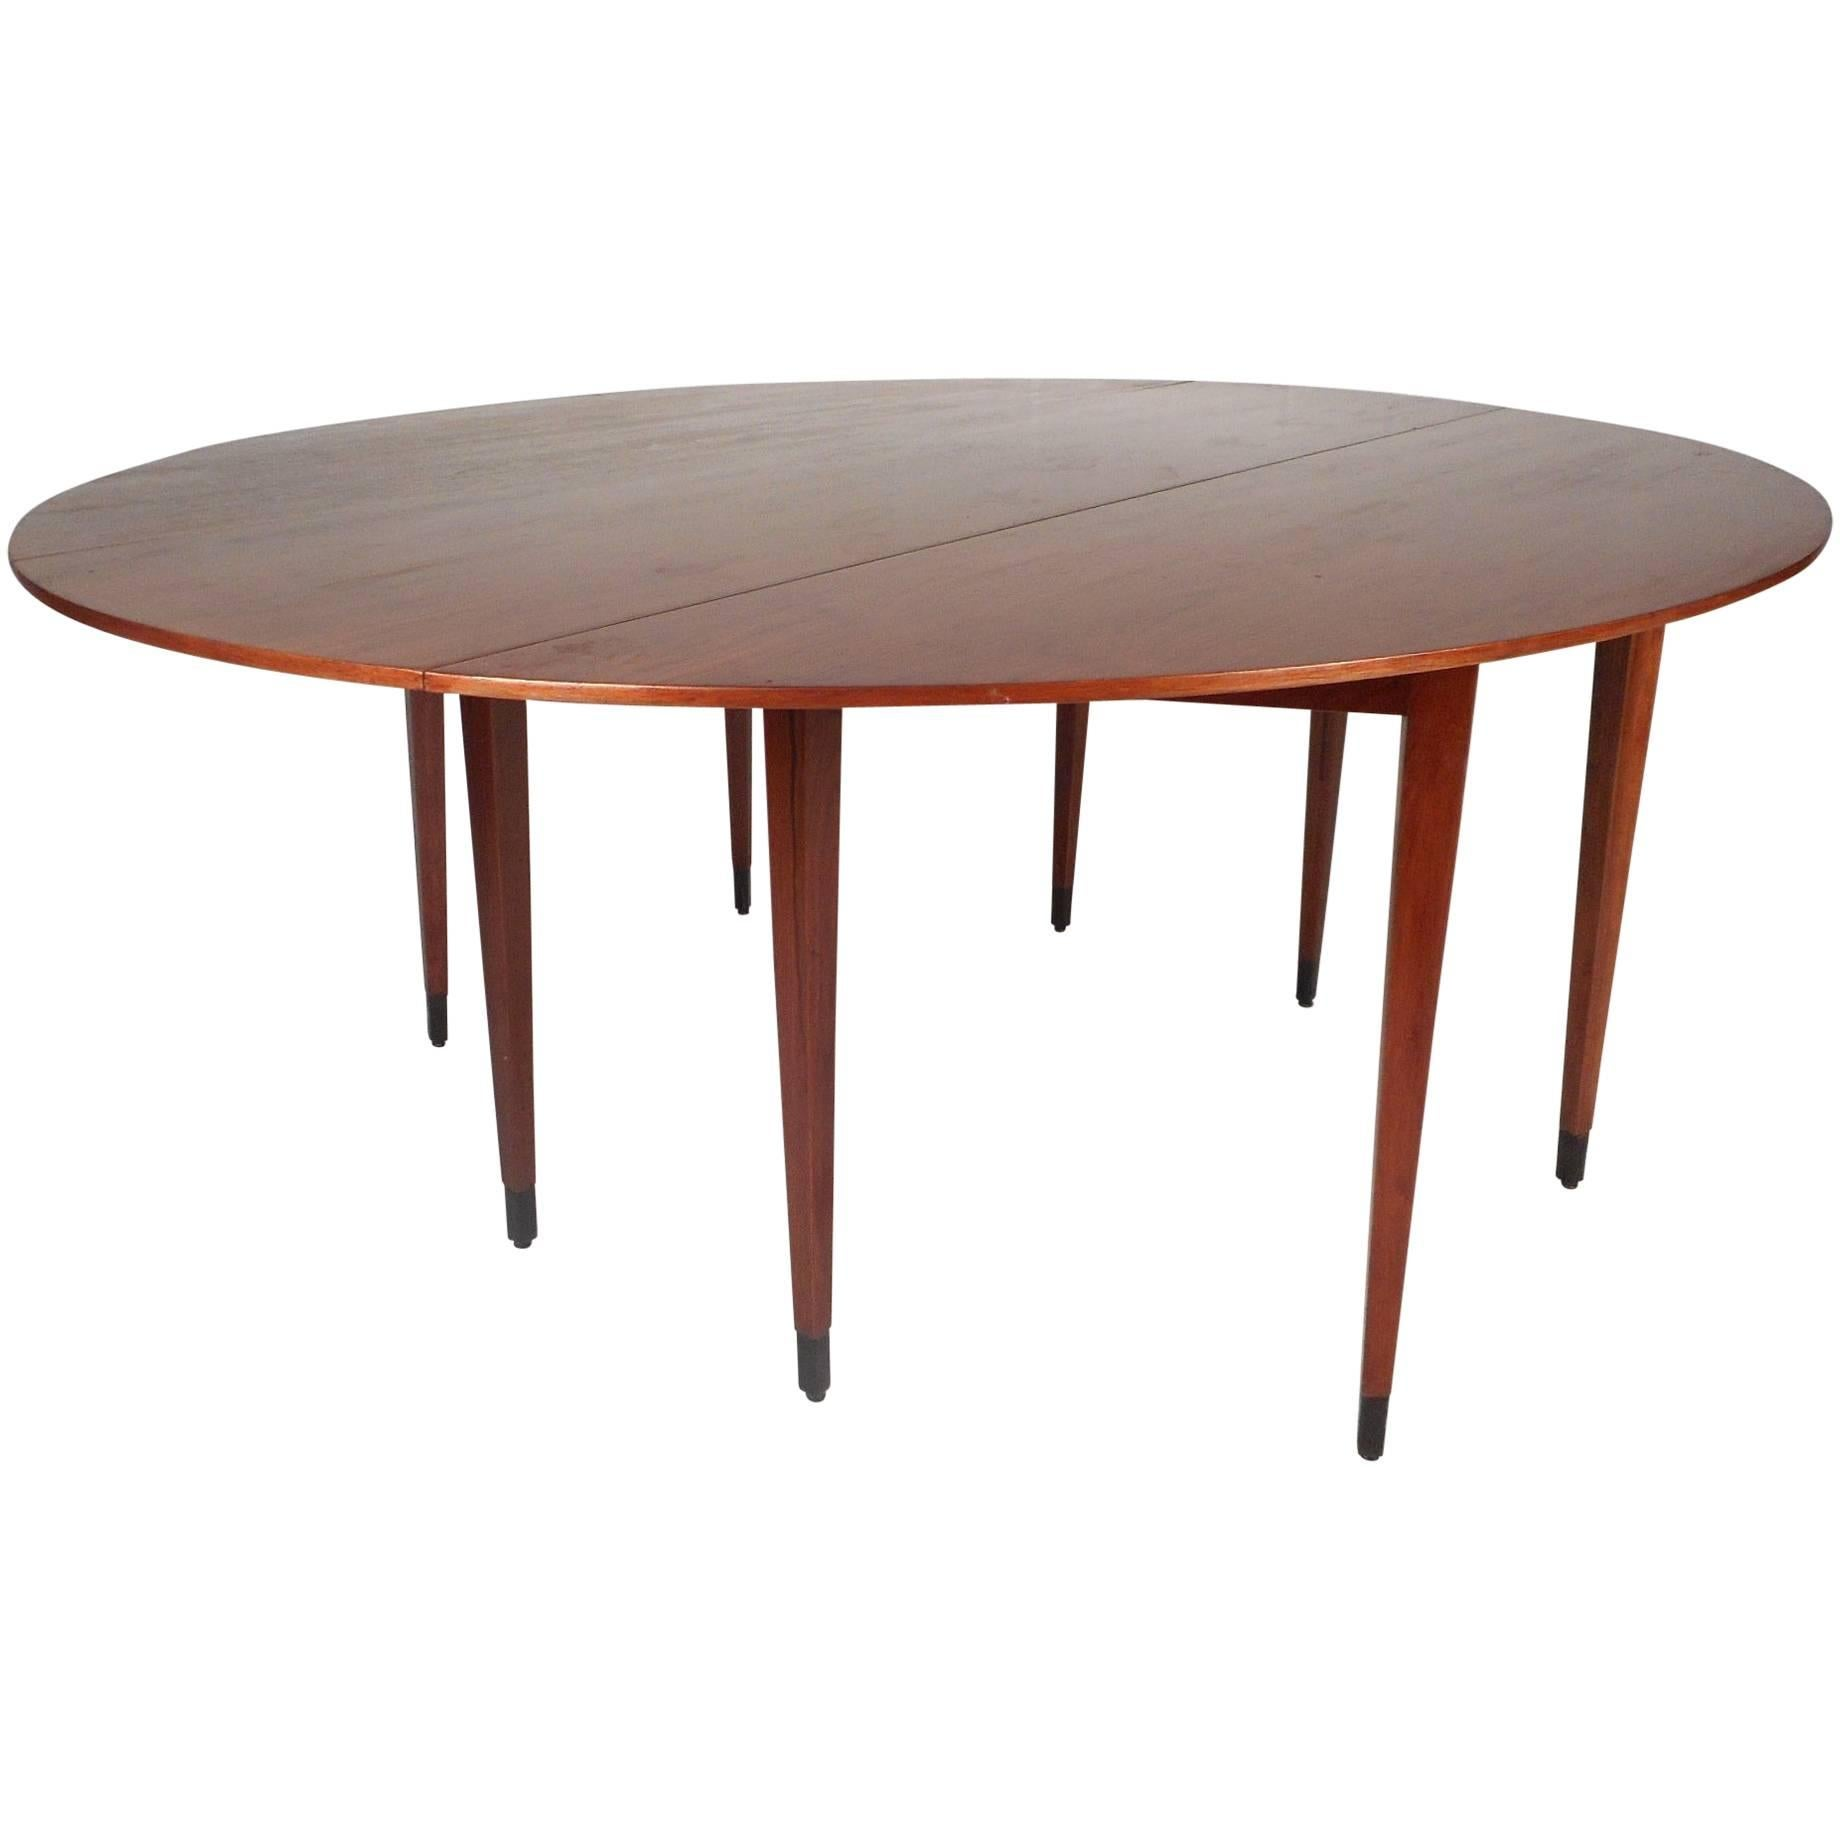 Danish Rosewood Butterfly Leaf Round To Oval Dining Table, 1960S